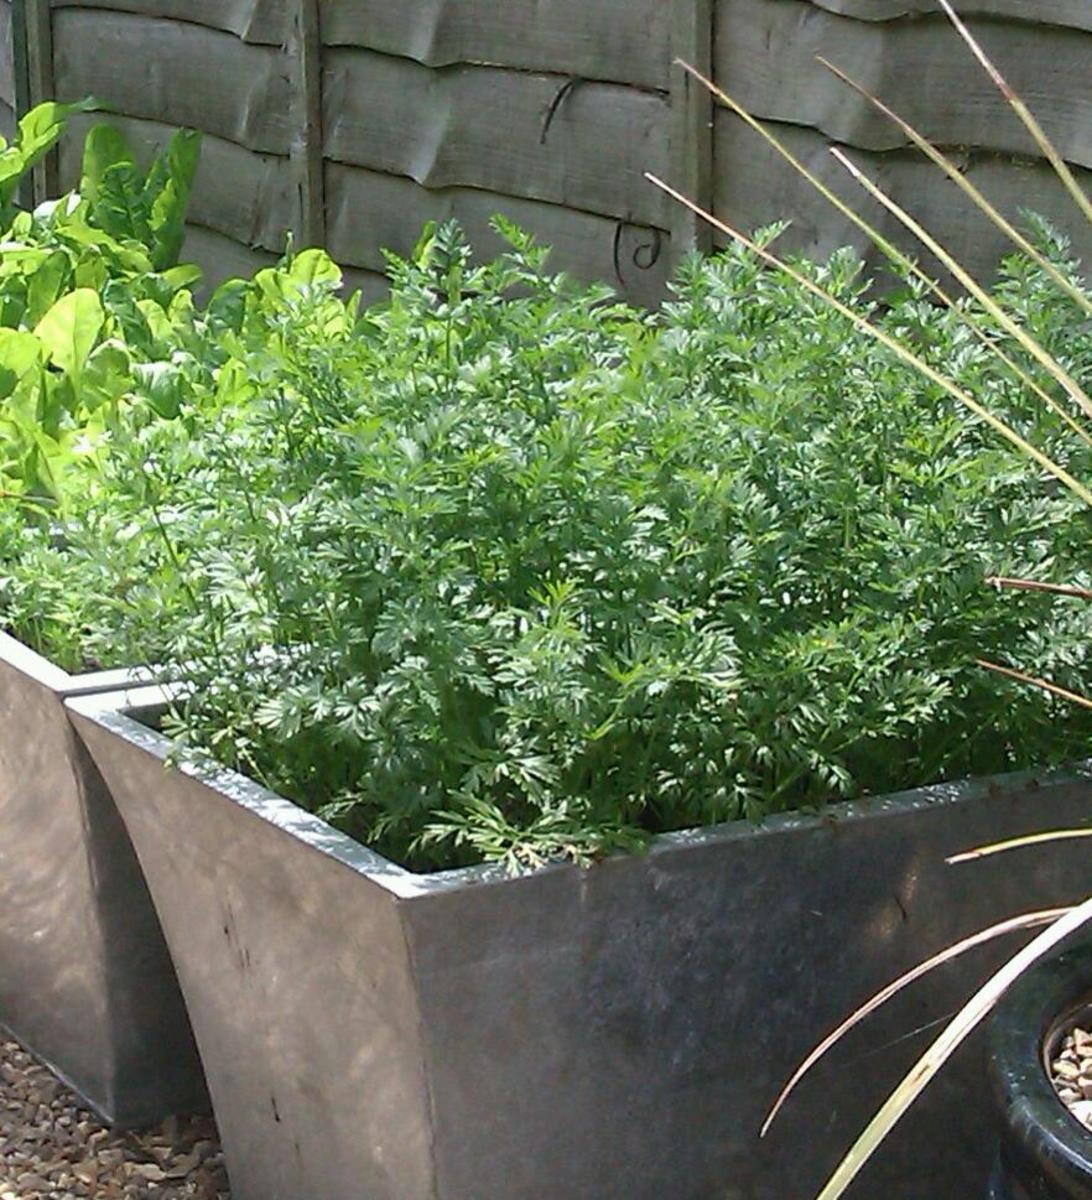 Carrots in metal container